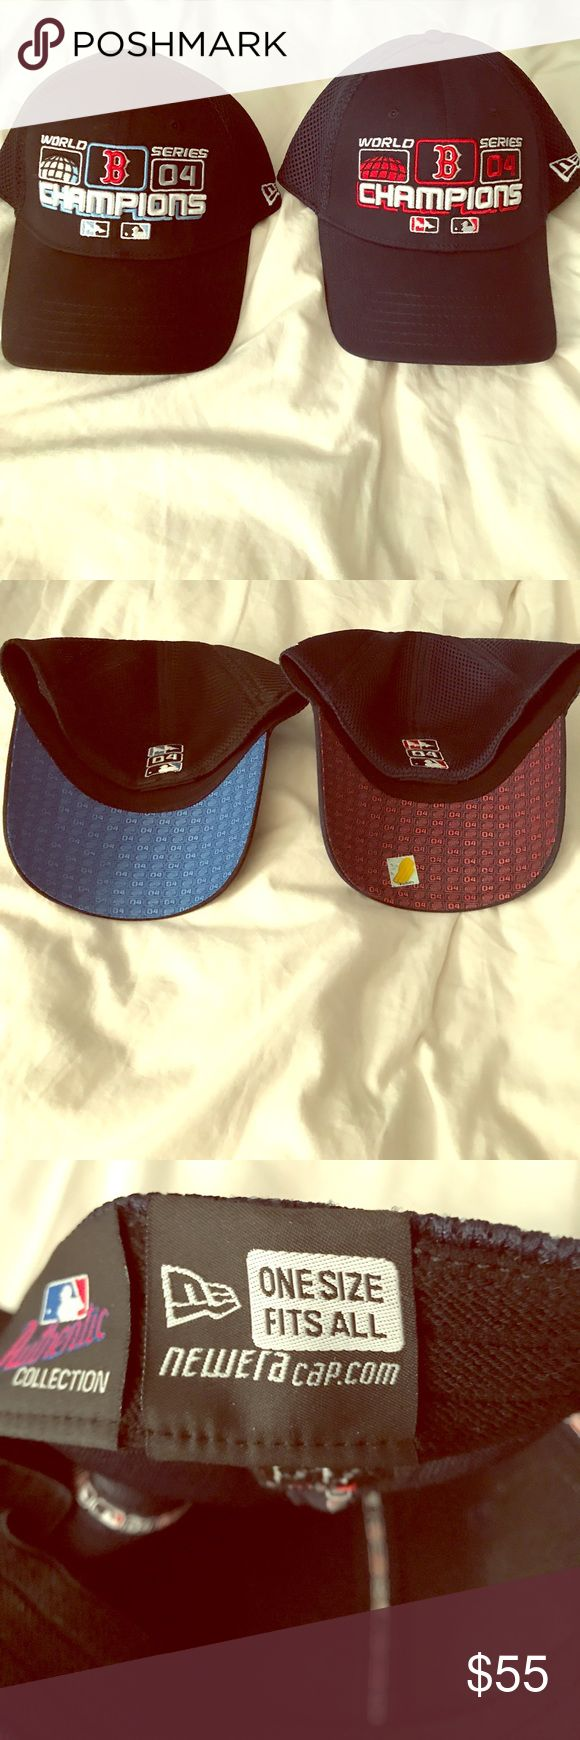 ⚾️ Boston Red Sox 04' World Series Champions Hats ⚾️ Want a piece of history? From the year the Red Sox broke the curse, a rare unworn matching set of World Series hats. A must for any collector or Red Sox fan. New Era Accessories Hats